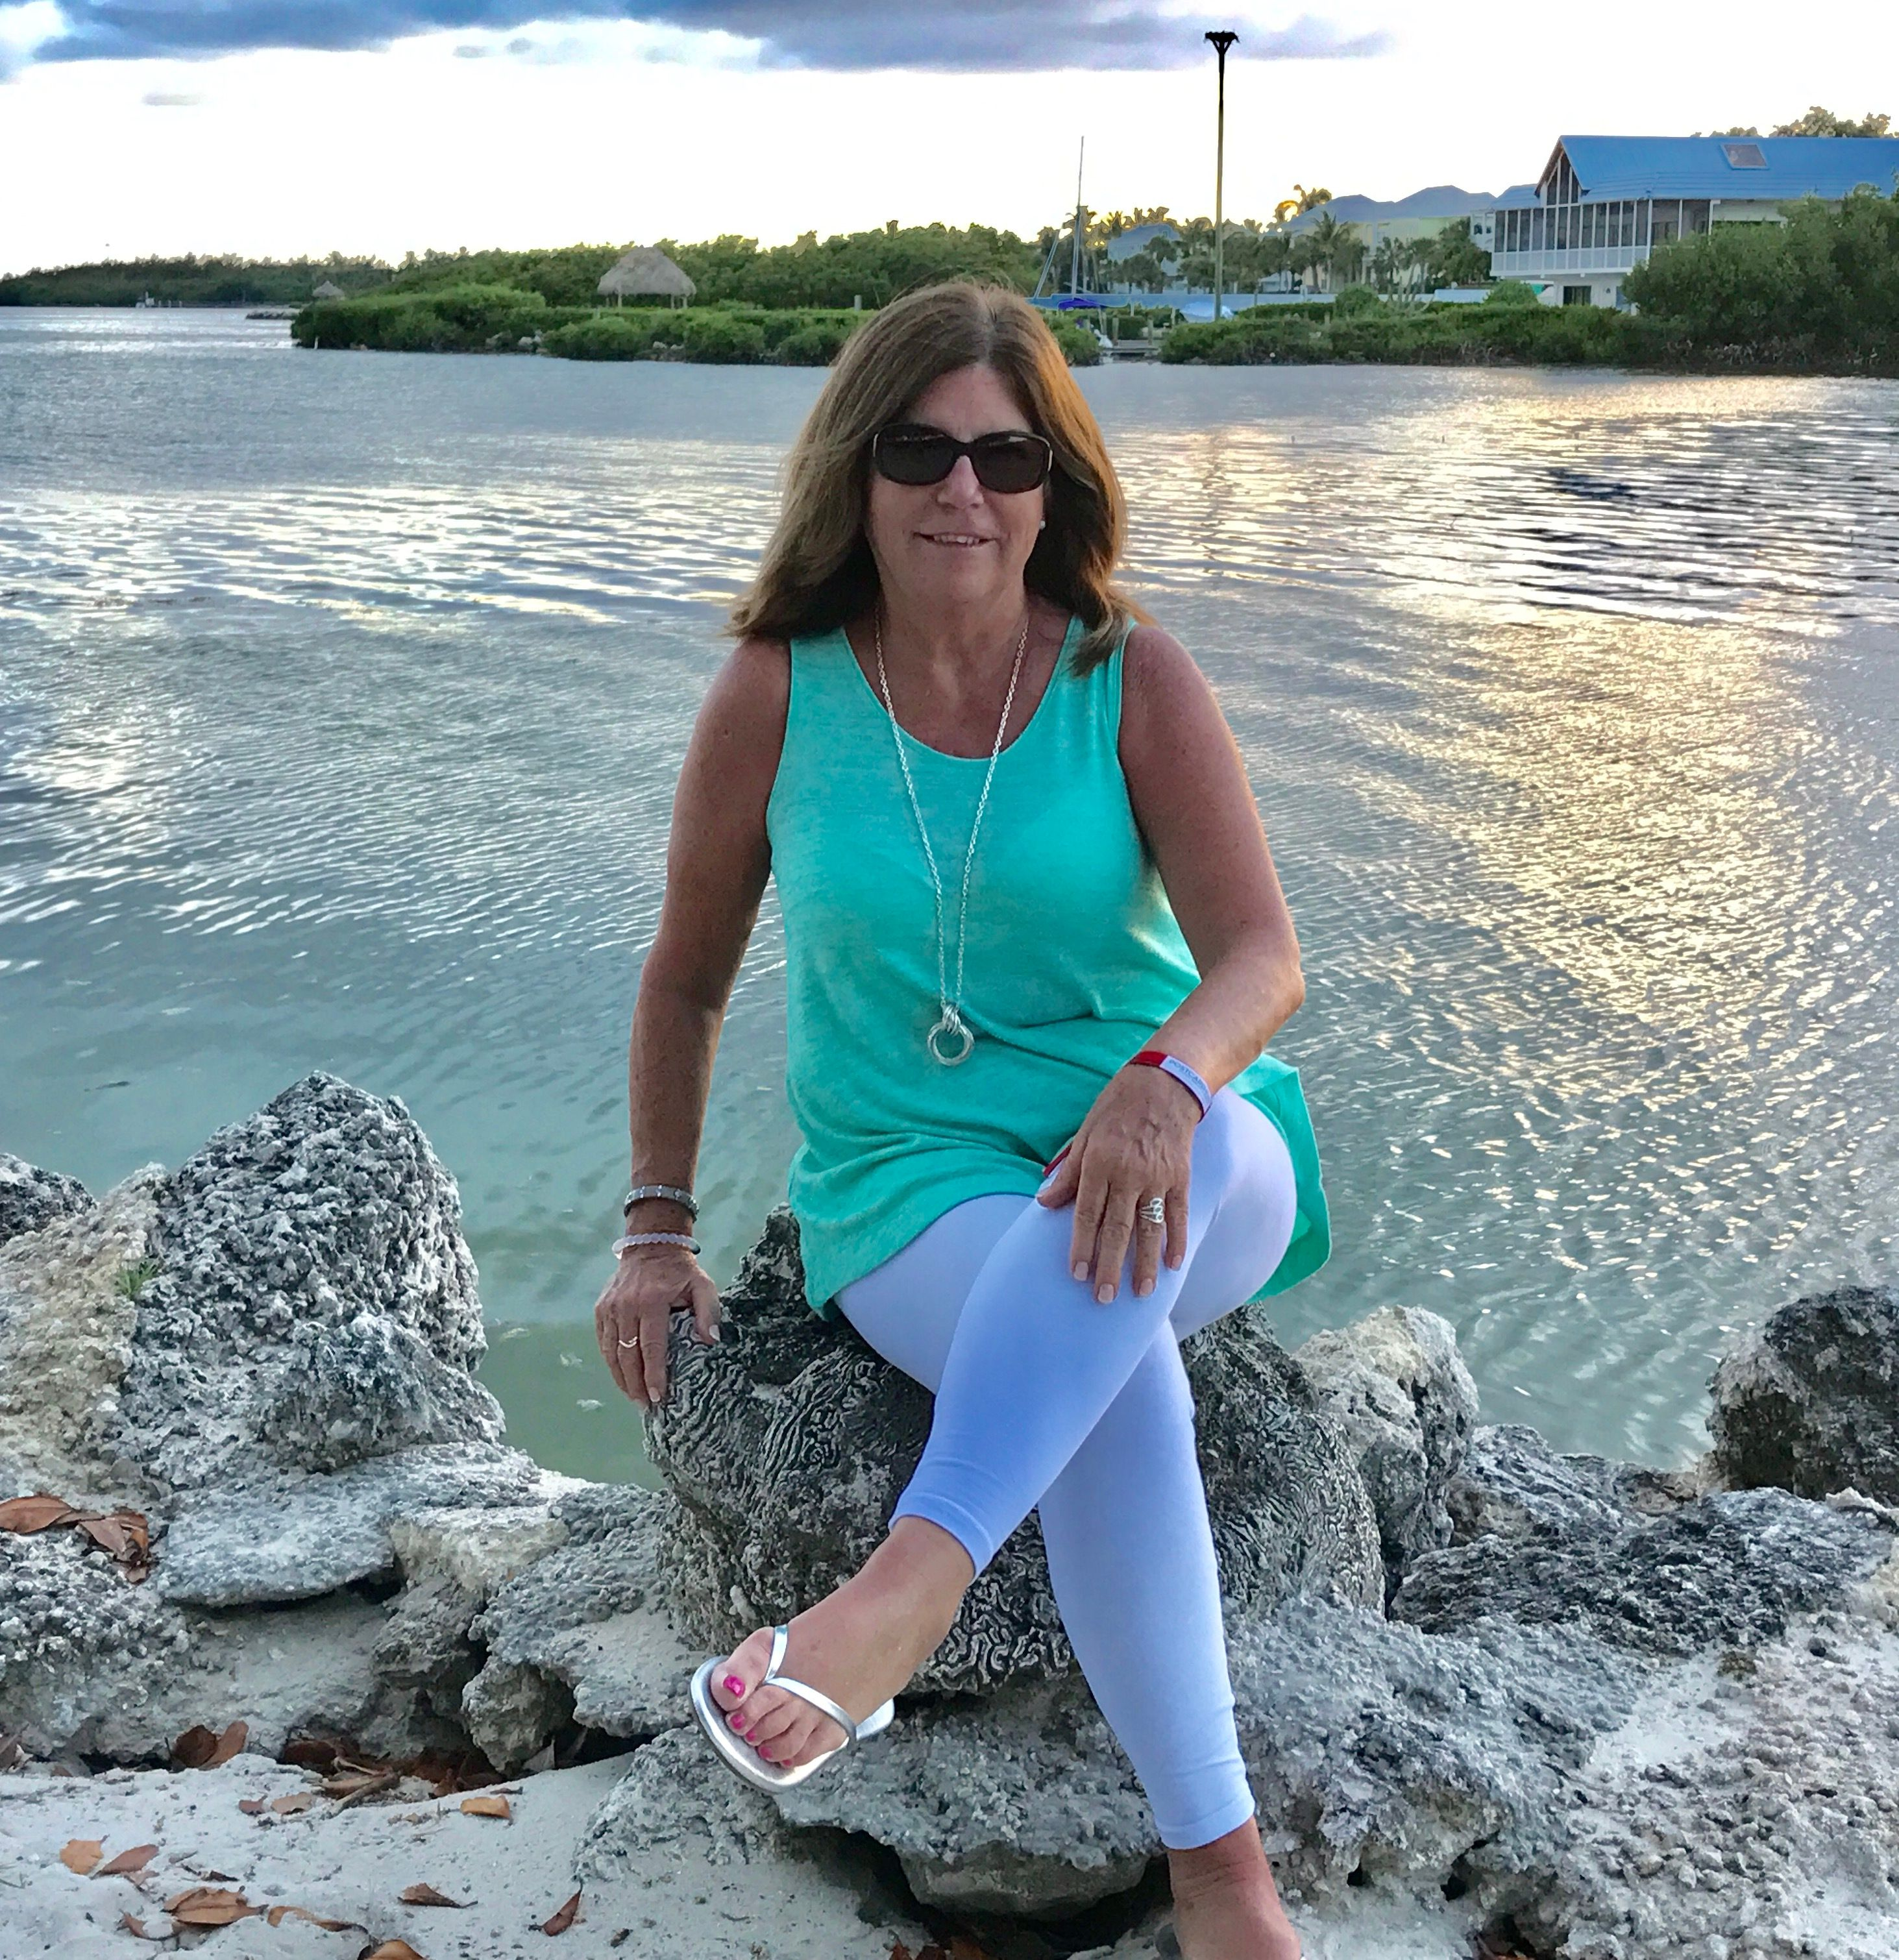 jensen beach mature personals Jensen beach singles - do you want to meet and chat with new people just register, create a profile, check out your profile matches and start meeting.